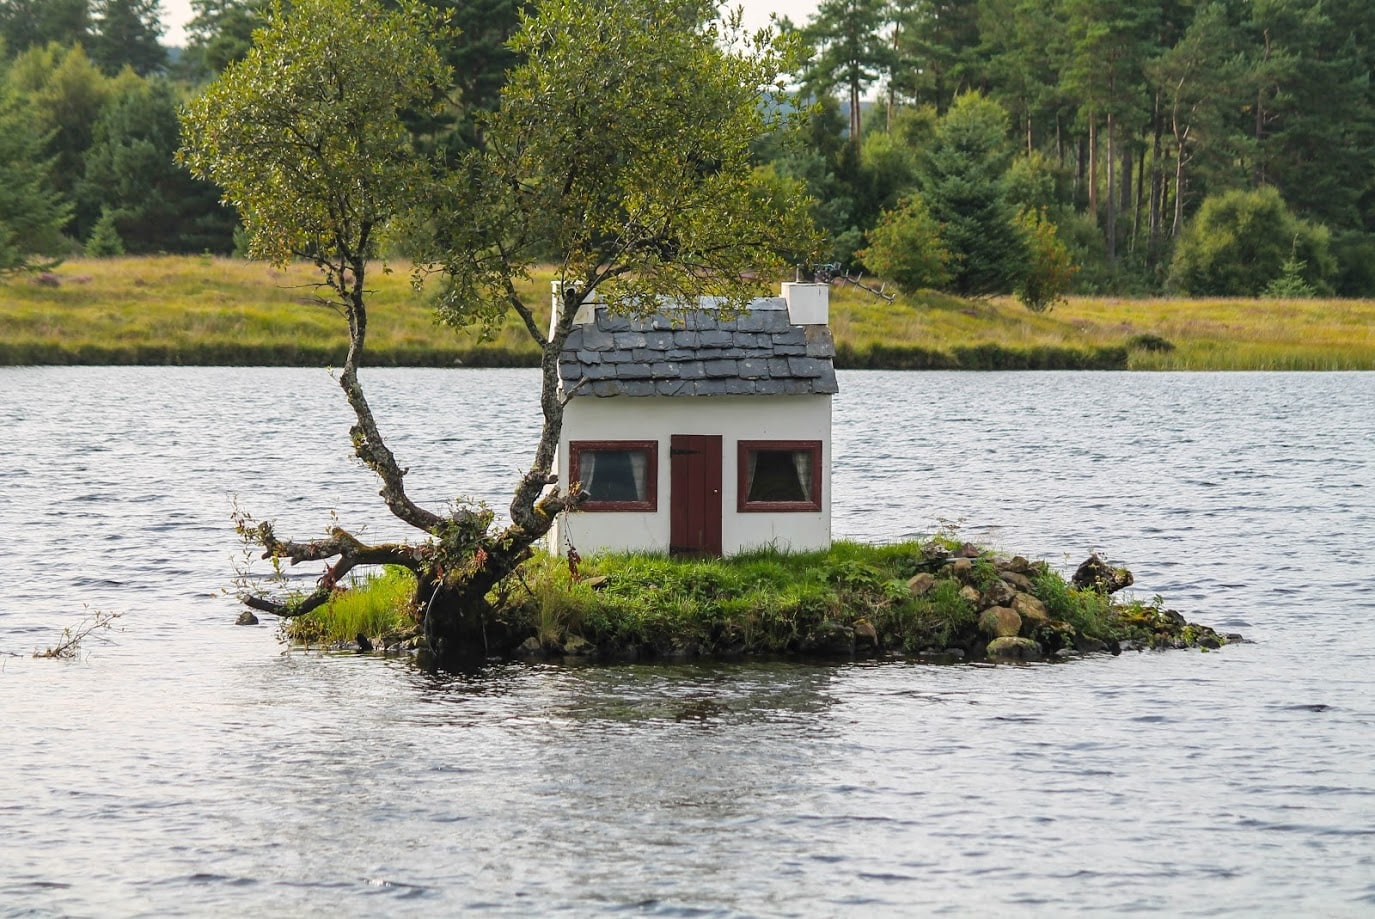 Most of us have wanted to live in a house like this at some point of time in our lives.